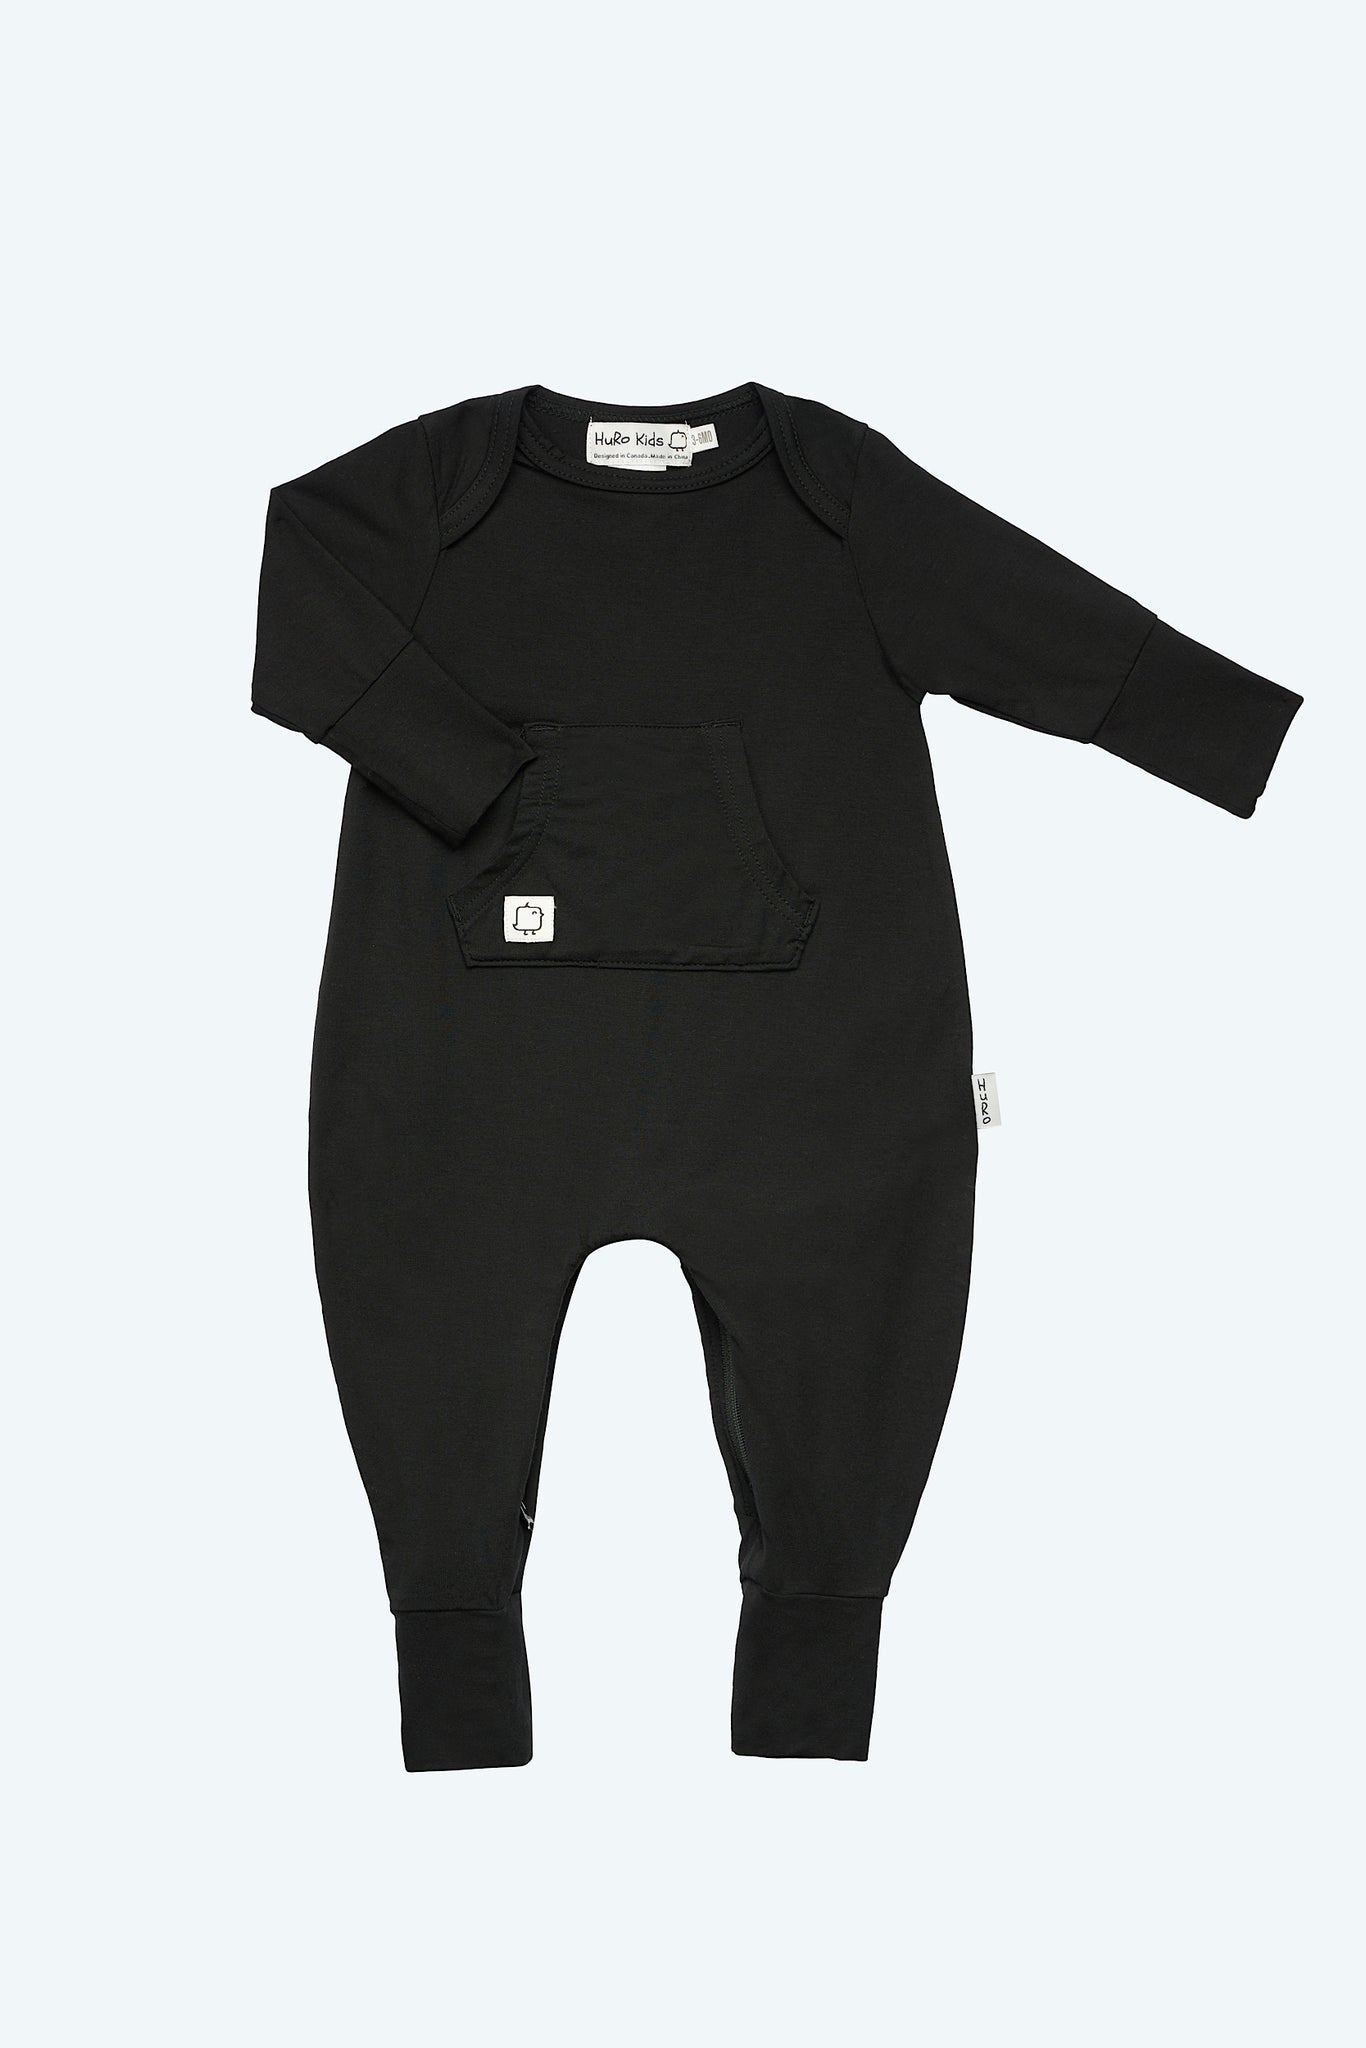 Perfect Onesie - Black - HuRo Kids Clothing